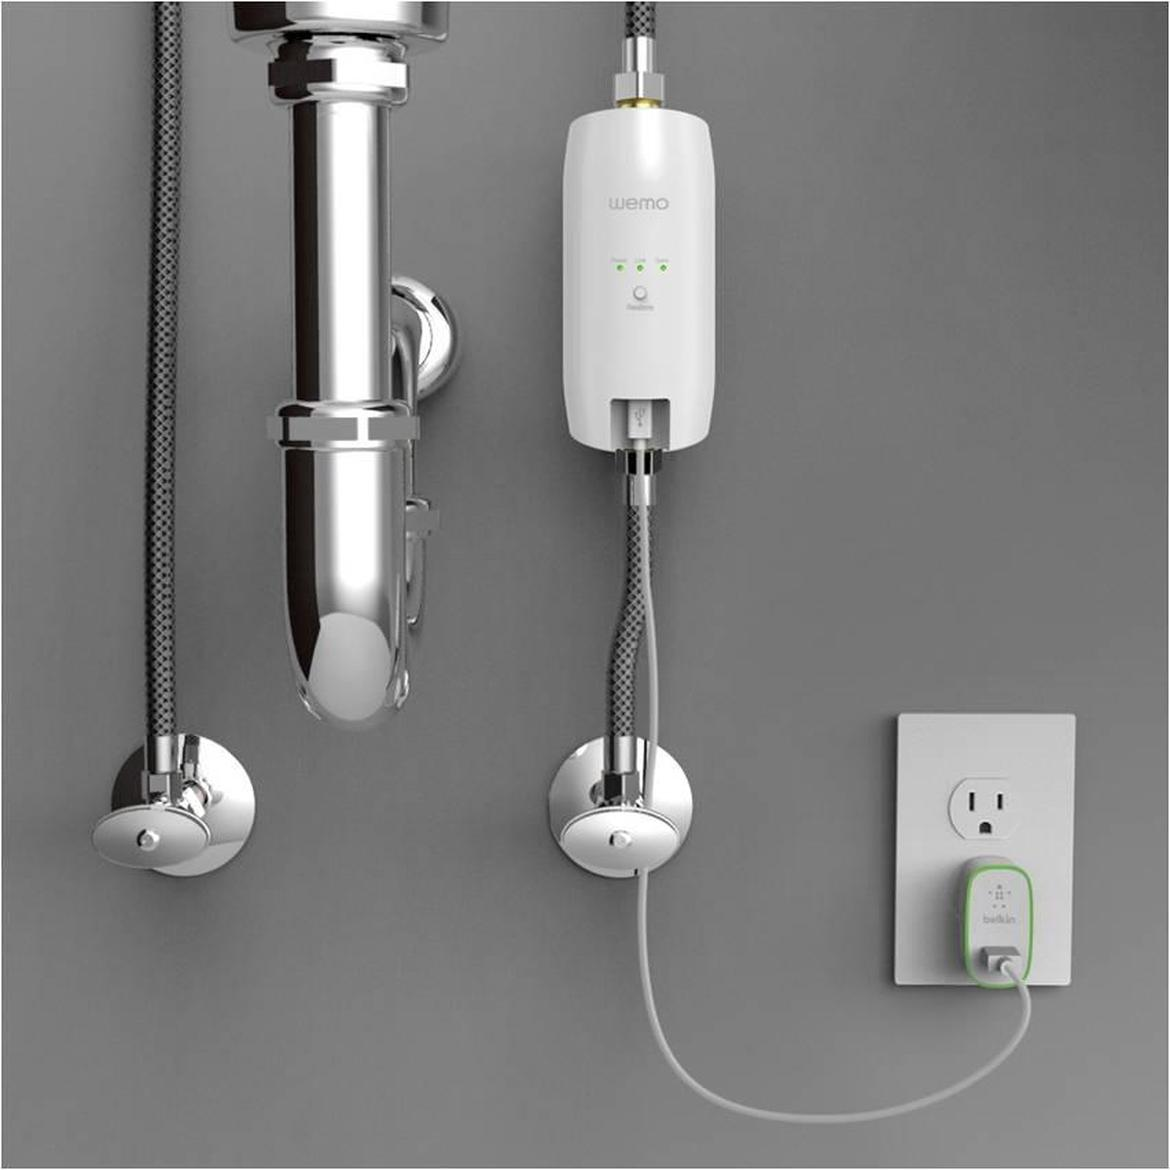 wemo-water-with-echo-technology